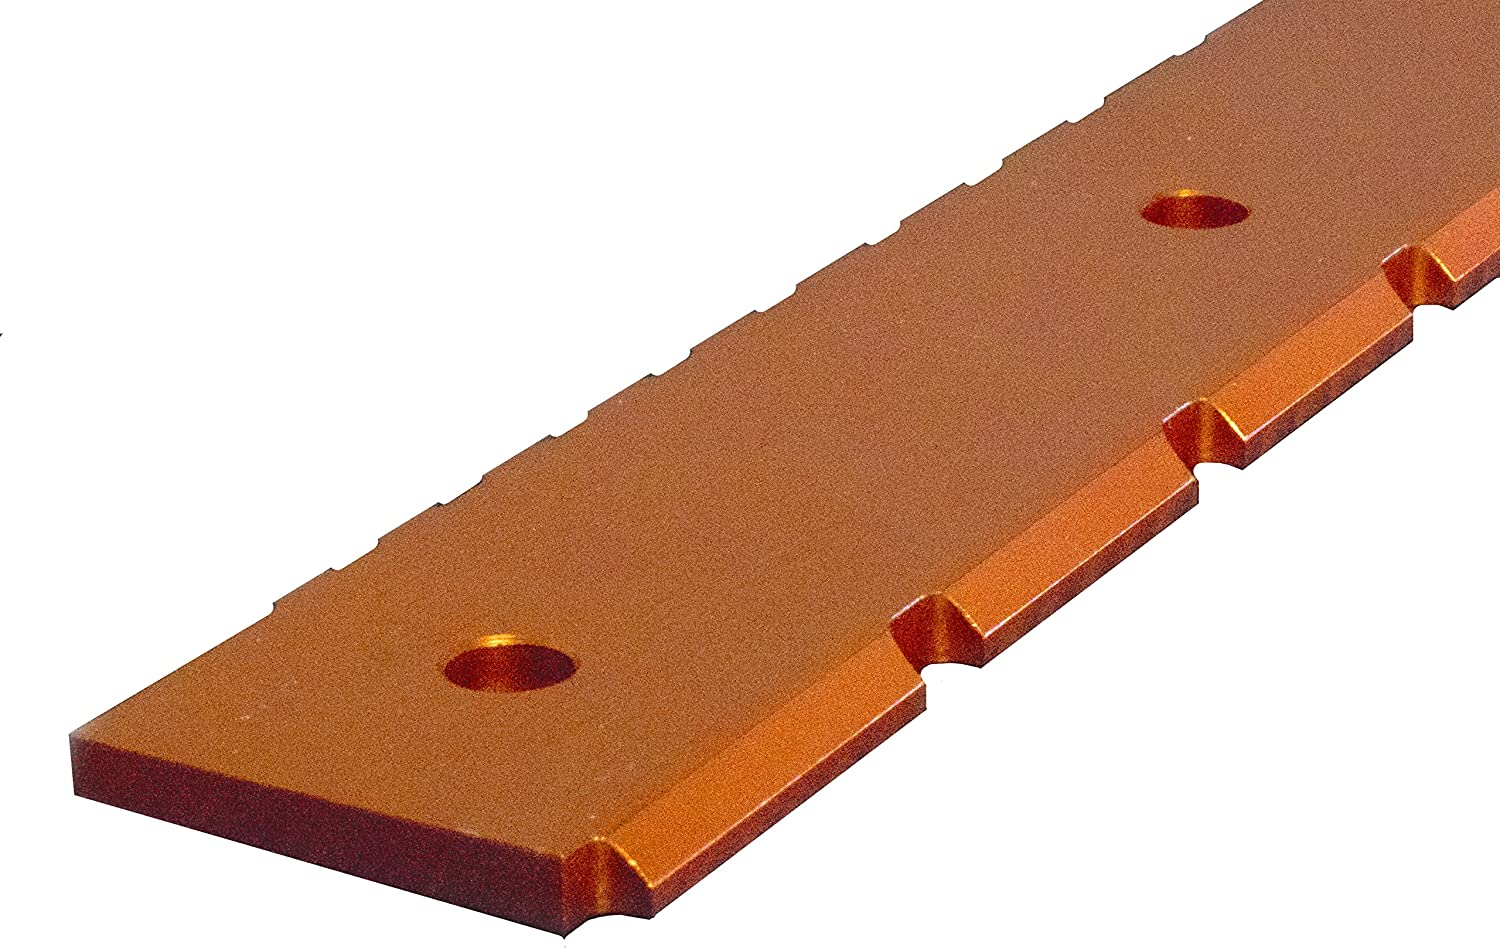 Notched Straight Superior Edge Atlanta Mall For Fender Guitar - Nec Scale Gibson